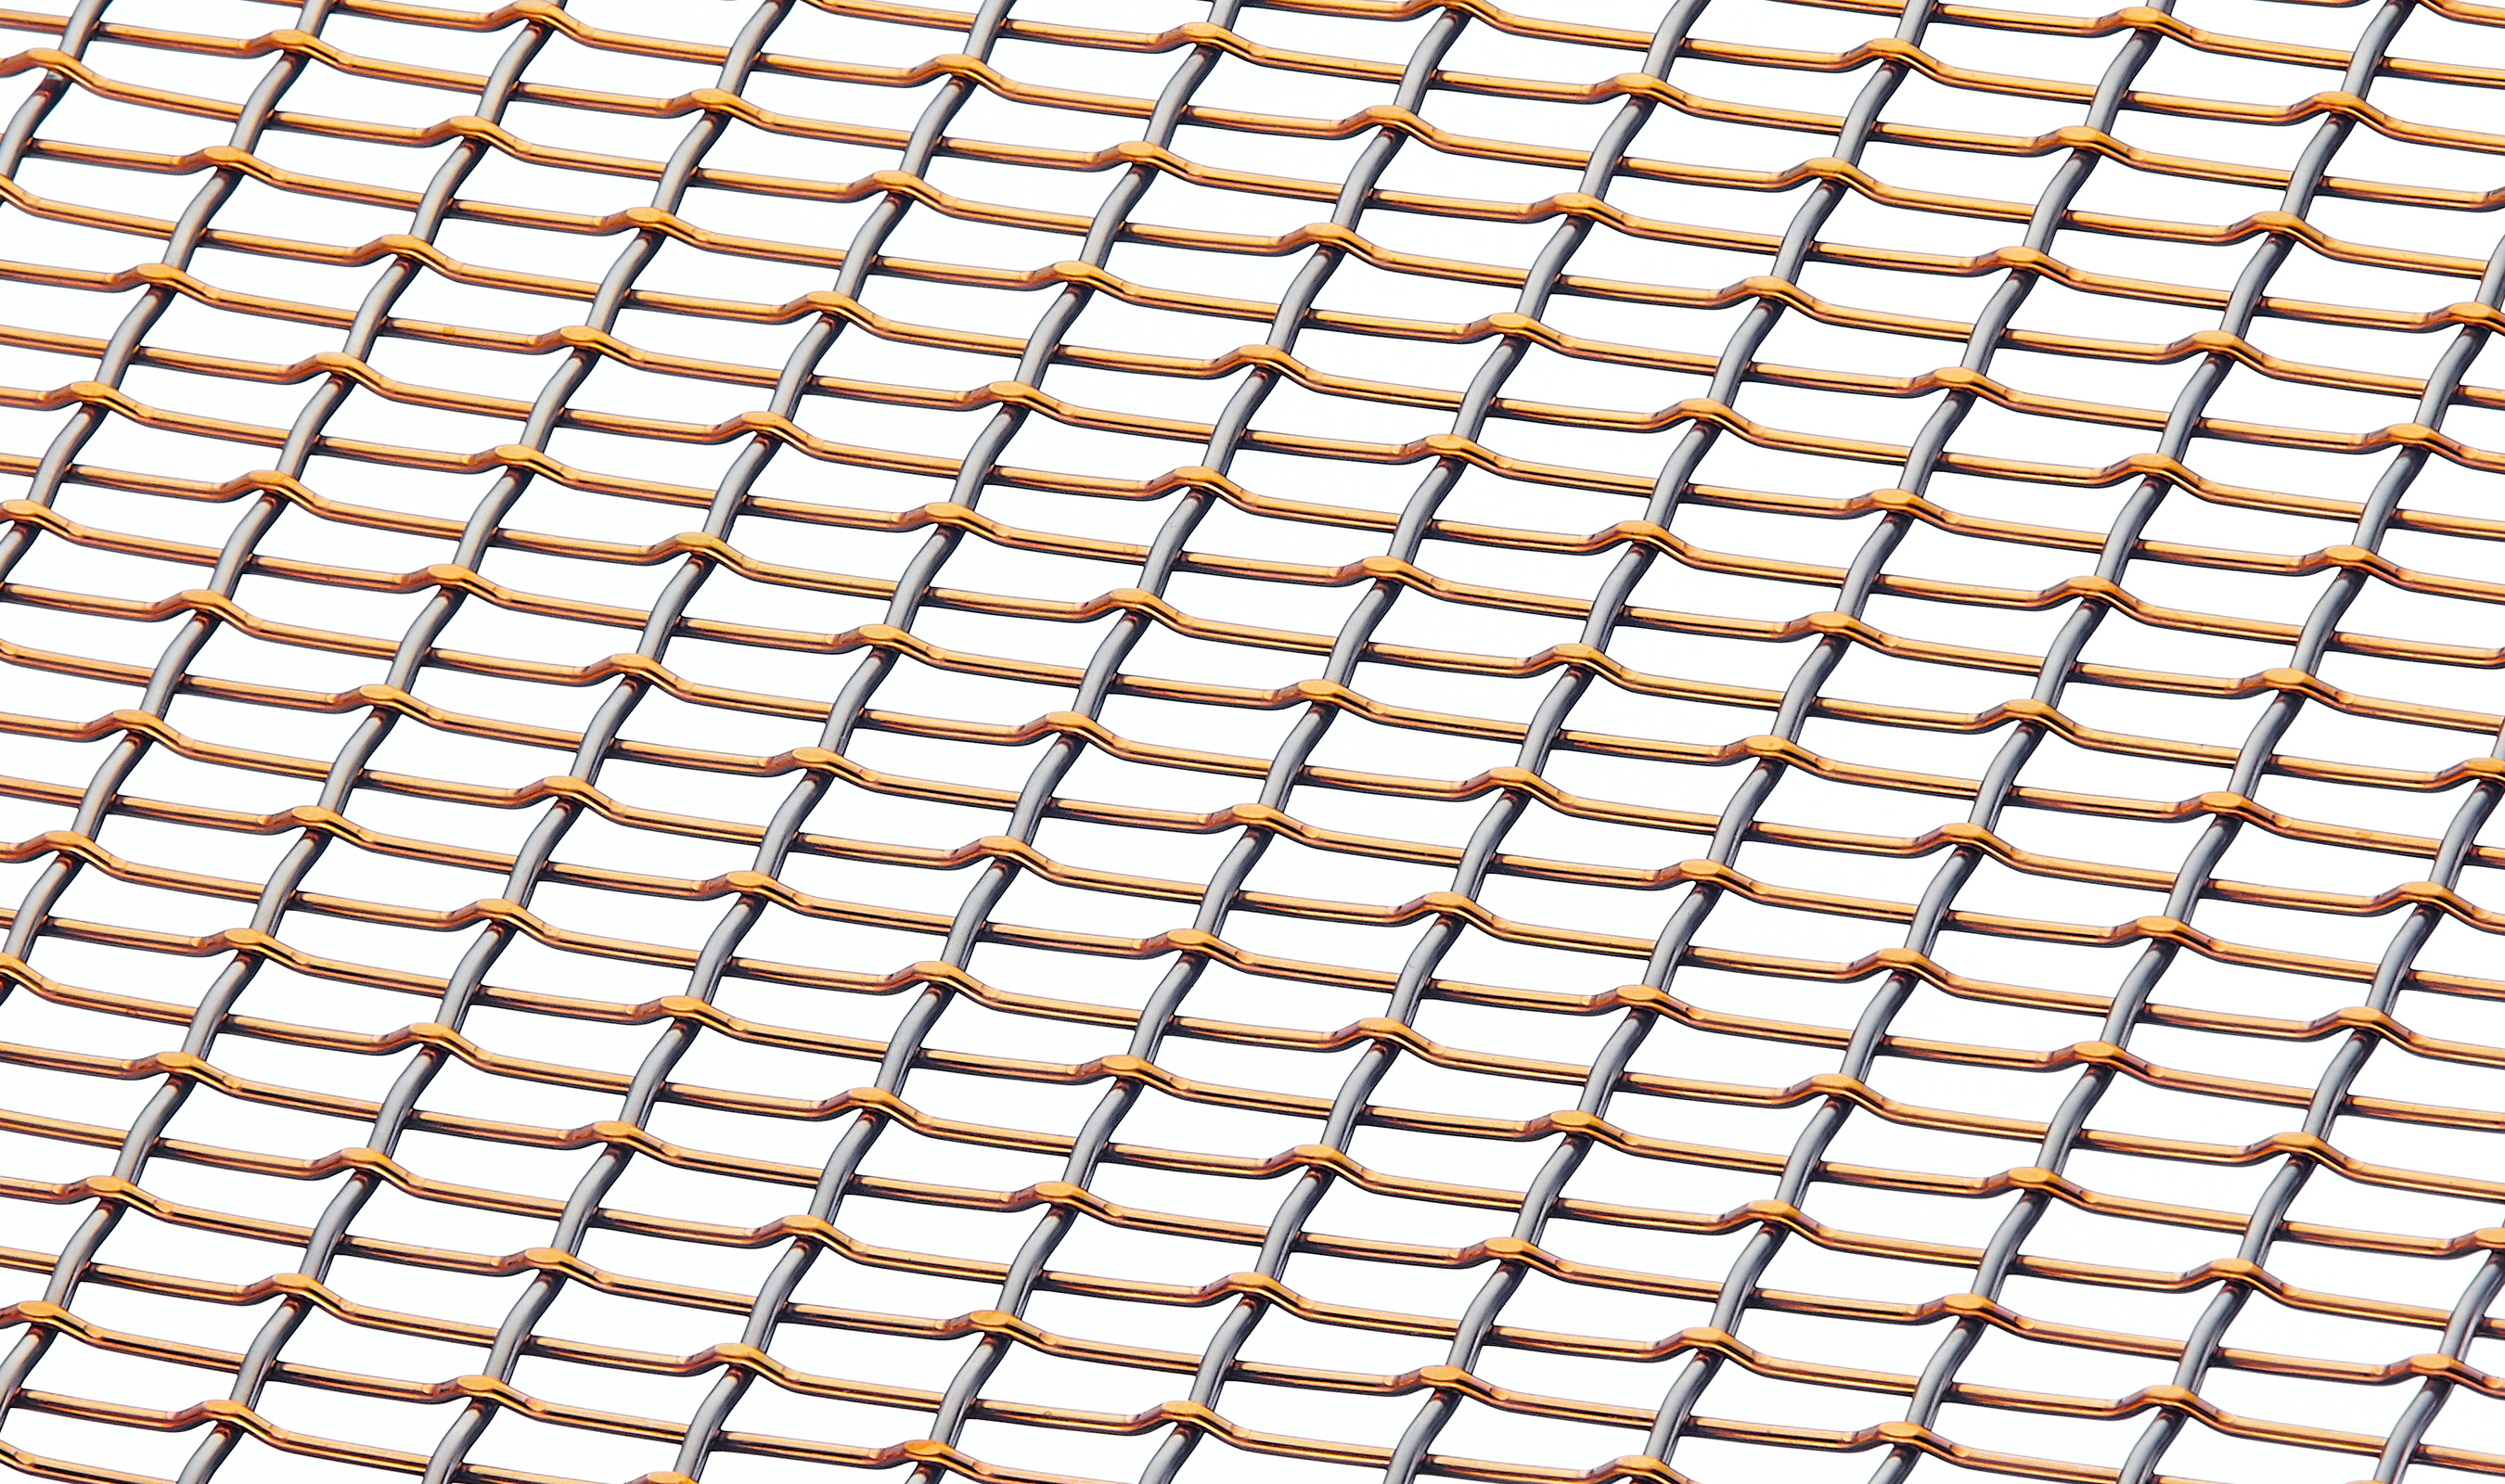 FPZ-44 Bronze and stainless steel wire mesh pattern